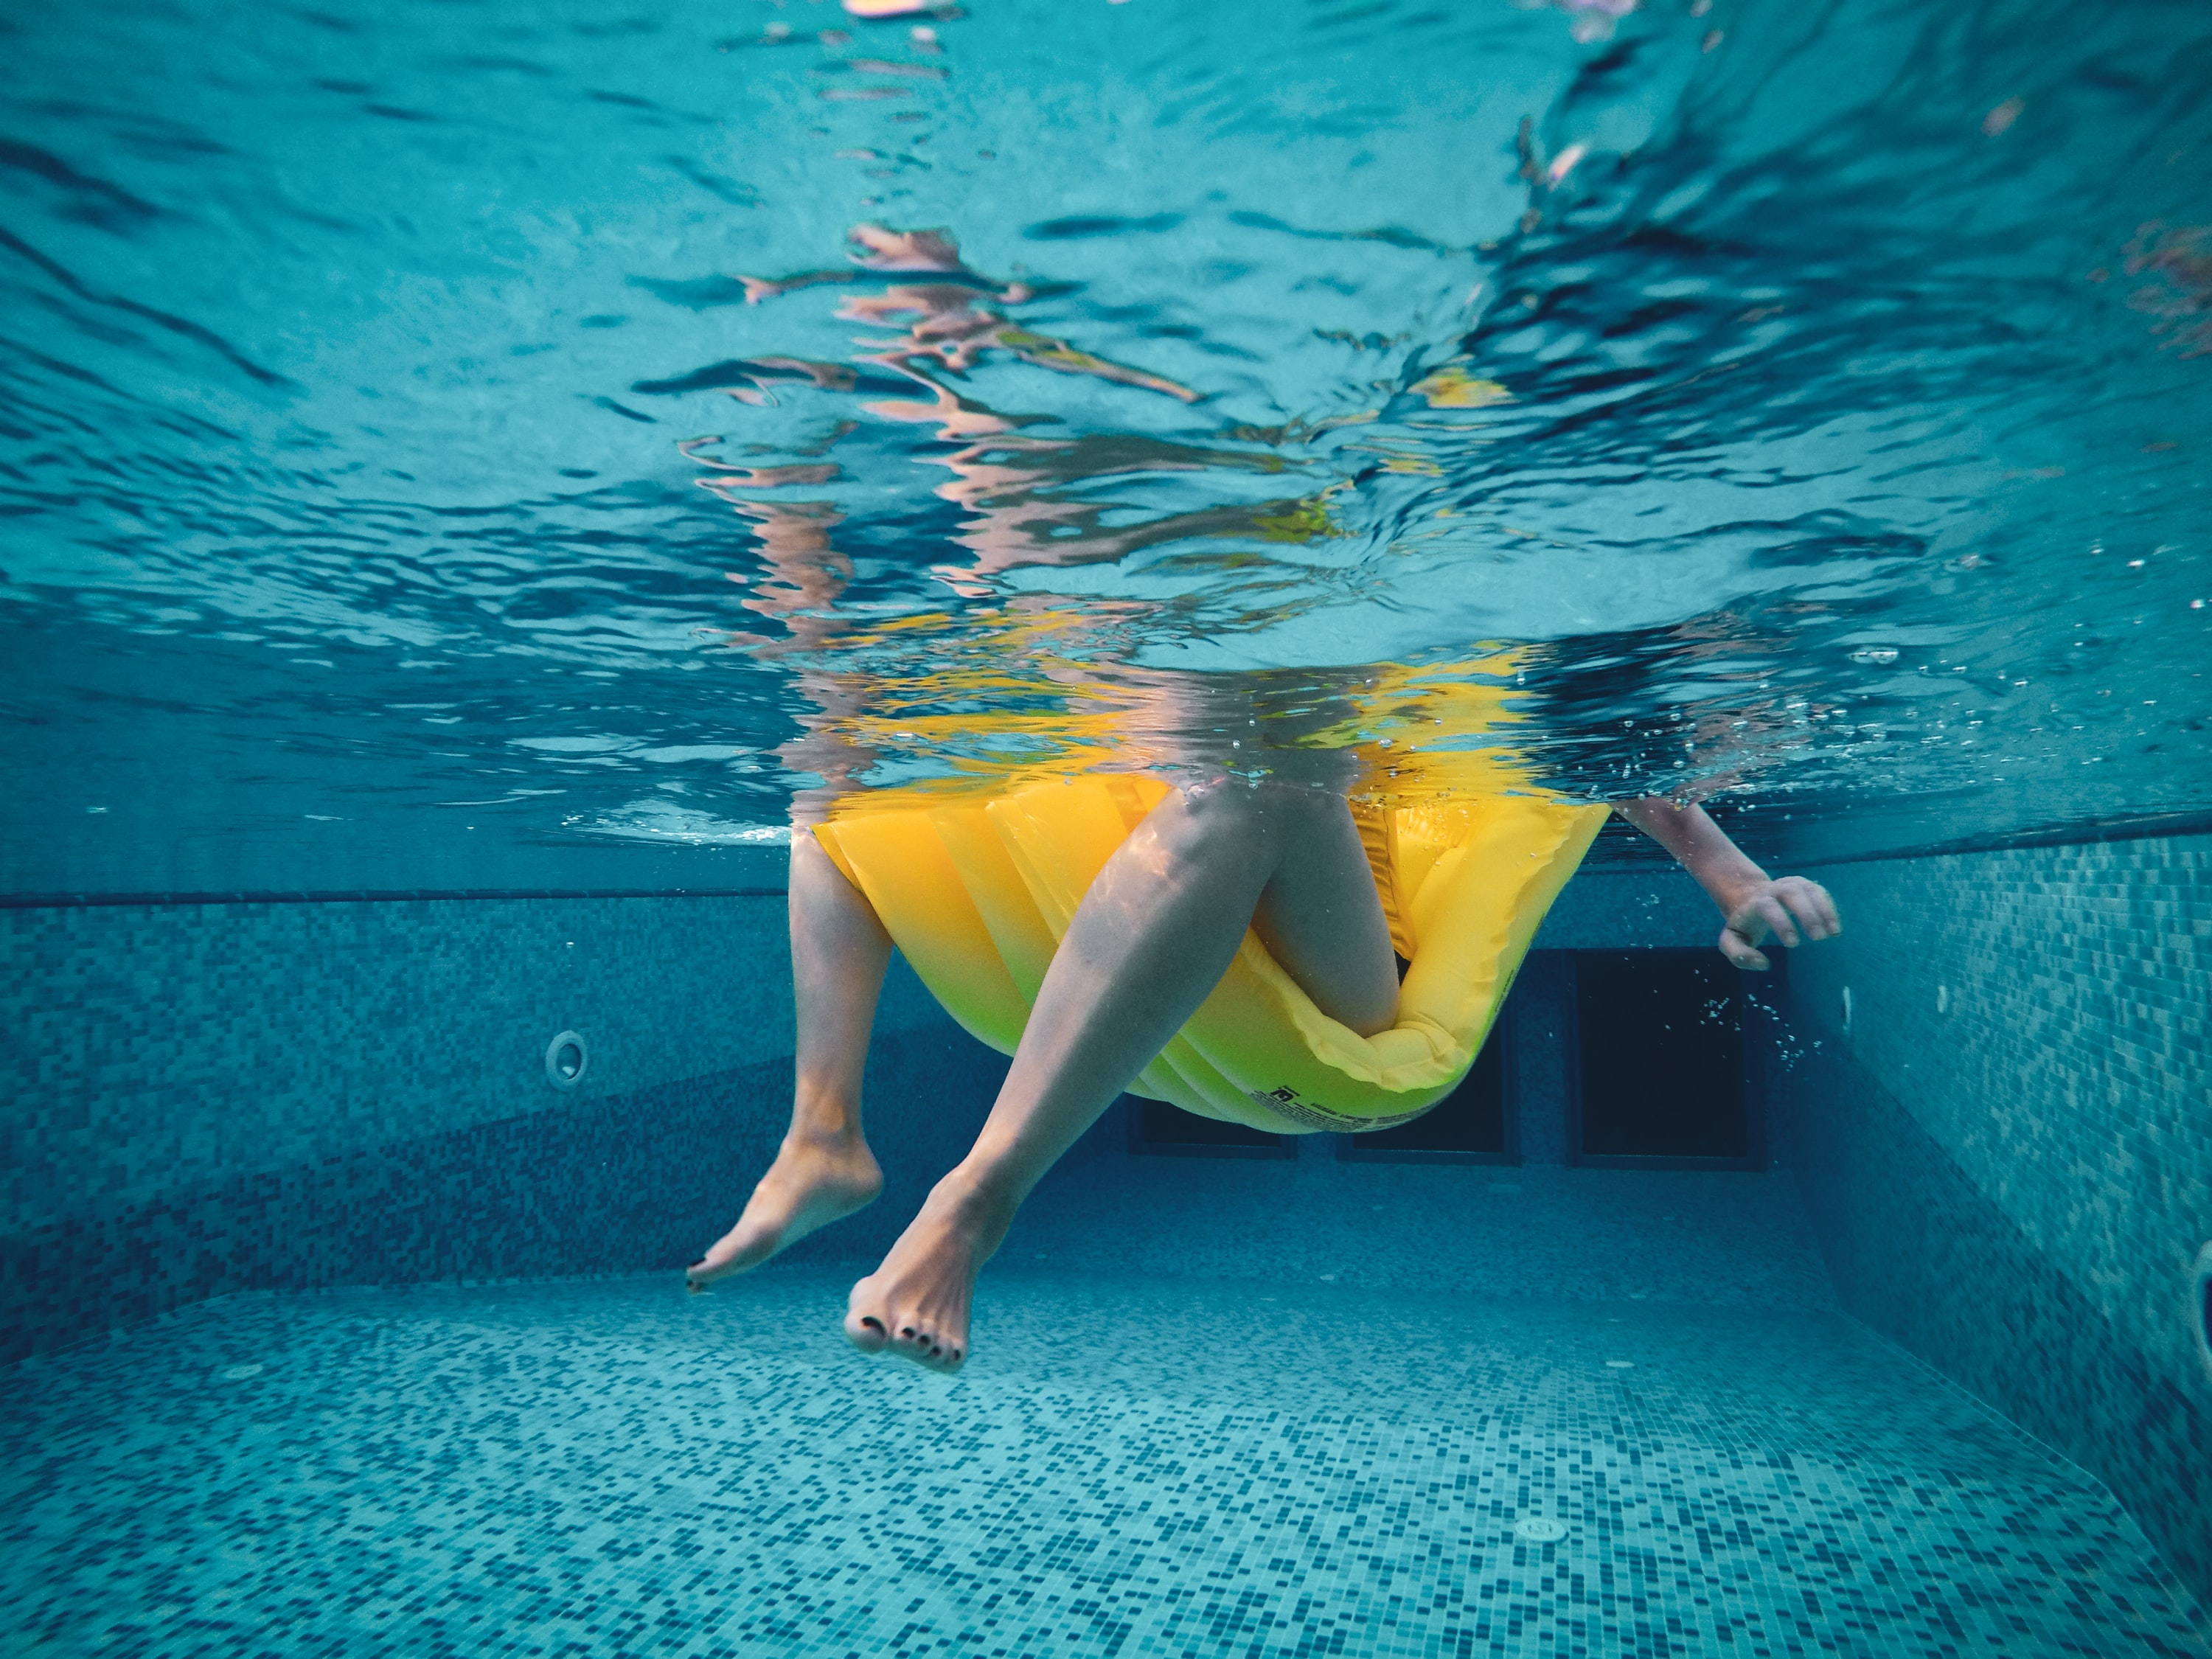 woman on yellow float sinking in swimming pool